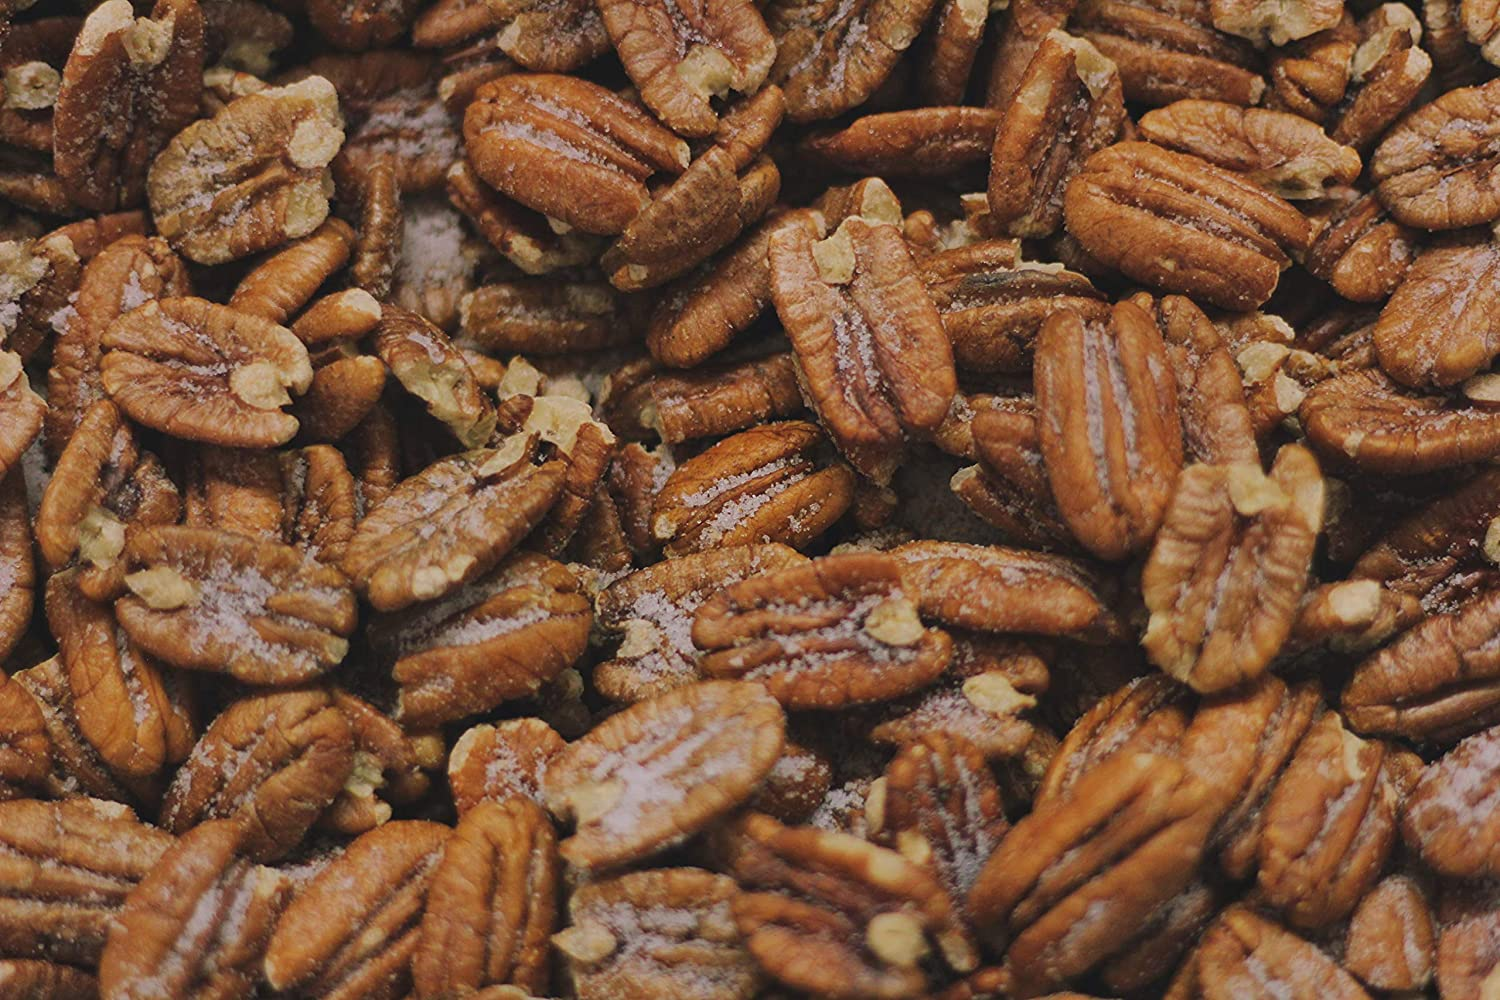 Fried Salted Pecans 1lb Atlanta Mall Time sale